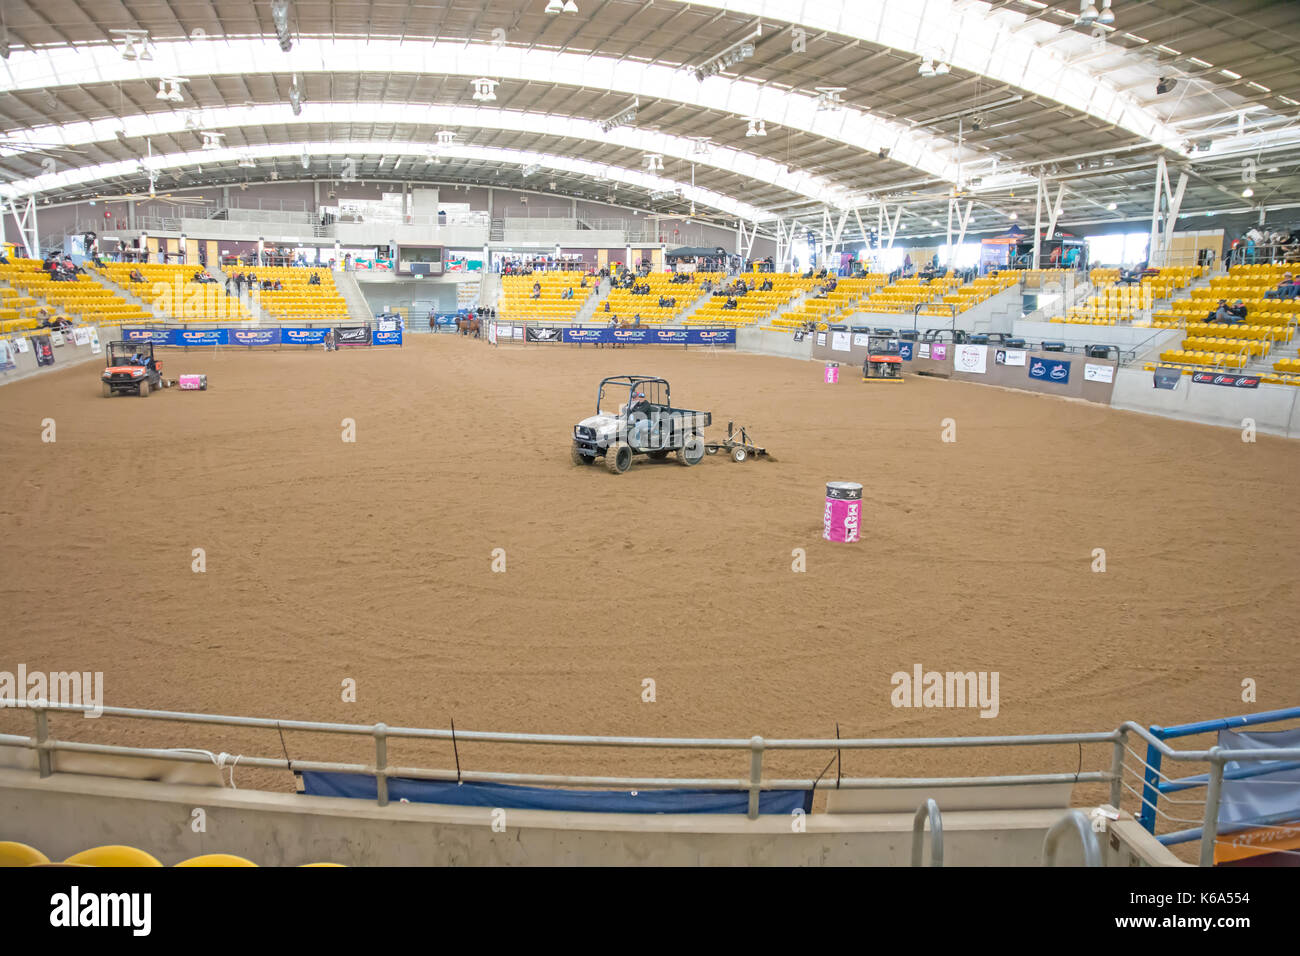 Golf Buggies raking and smoothing sand at he indoor arena at Australian Equine and Livestock Events Centre Tamworth Australia. - Stock Image